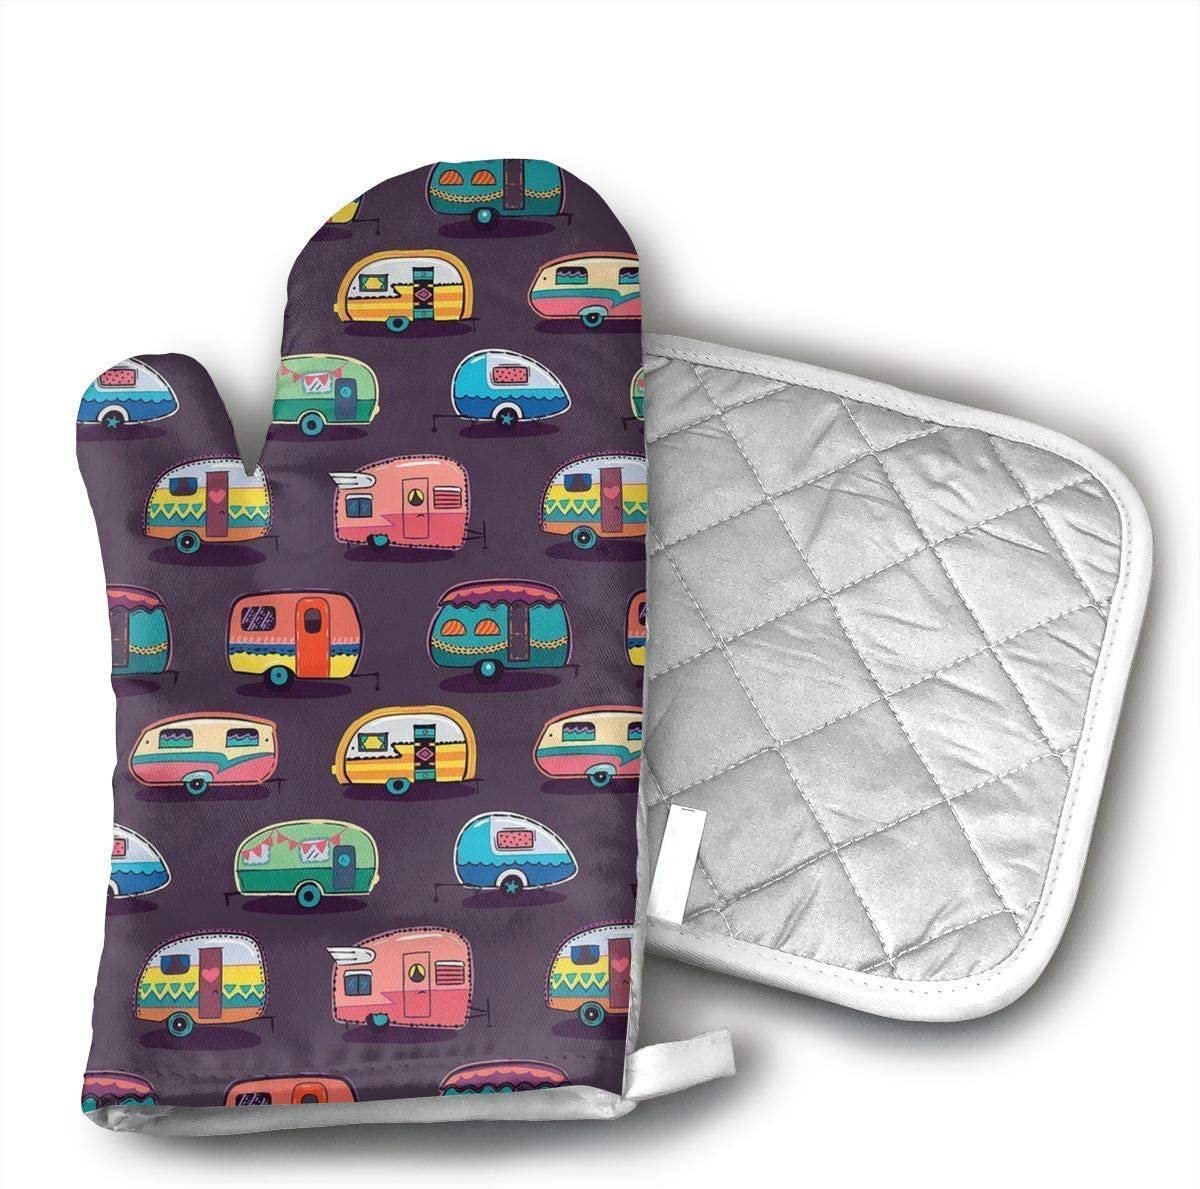 Happy Camper Oven Mitts and Pot Holders Set with Polyester Cotton Non-Slip Grip, Heat Resistant, Oven Gloves for BBQ Cooking Baking, Grilling